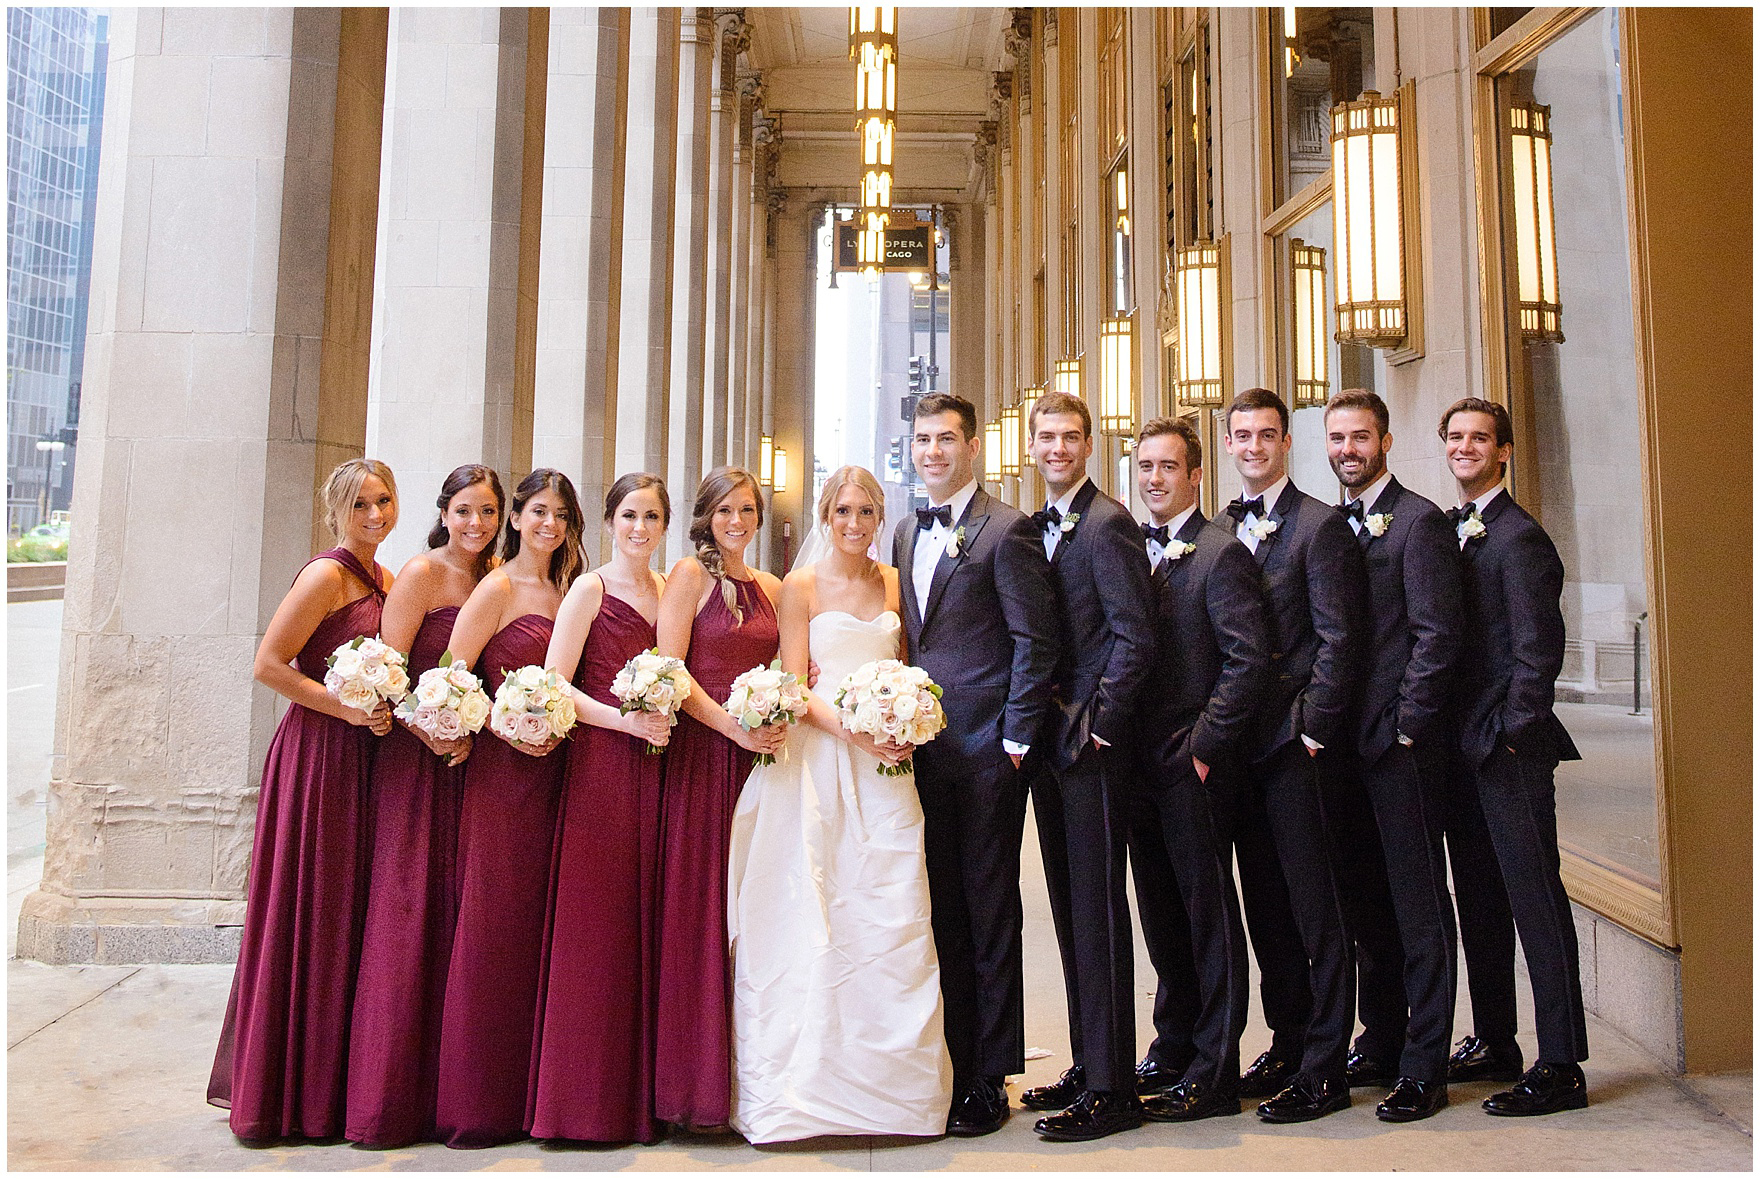 The bridal party is photographed at the Civic Opera House during a St. Clement Germania Place Chicago wedding.